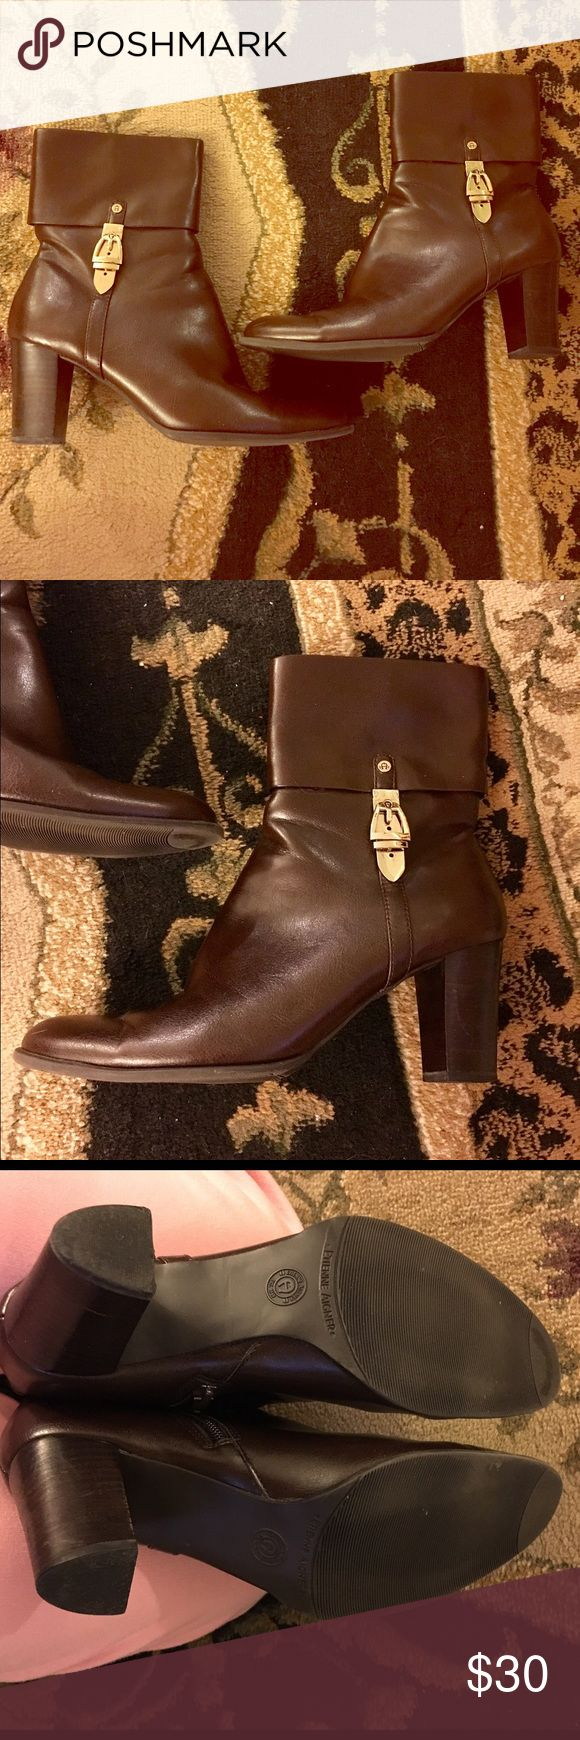 Etienne Aigner Brown Ankle Boot Booties Worn only once or twice!! Beautiful!!! Just waiting for the perfect home! Man made materials Size 7 Etienne Aigner Shoes Ankle Boots & Booties